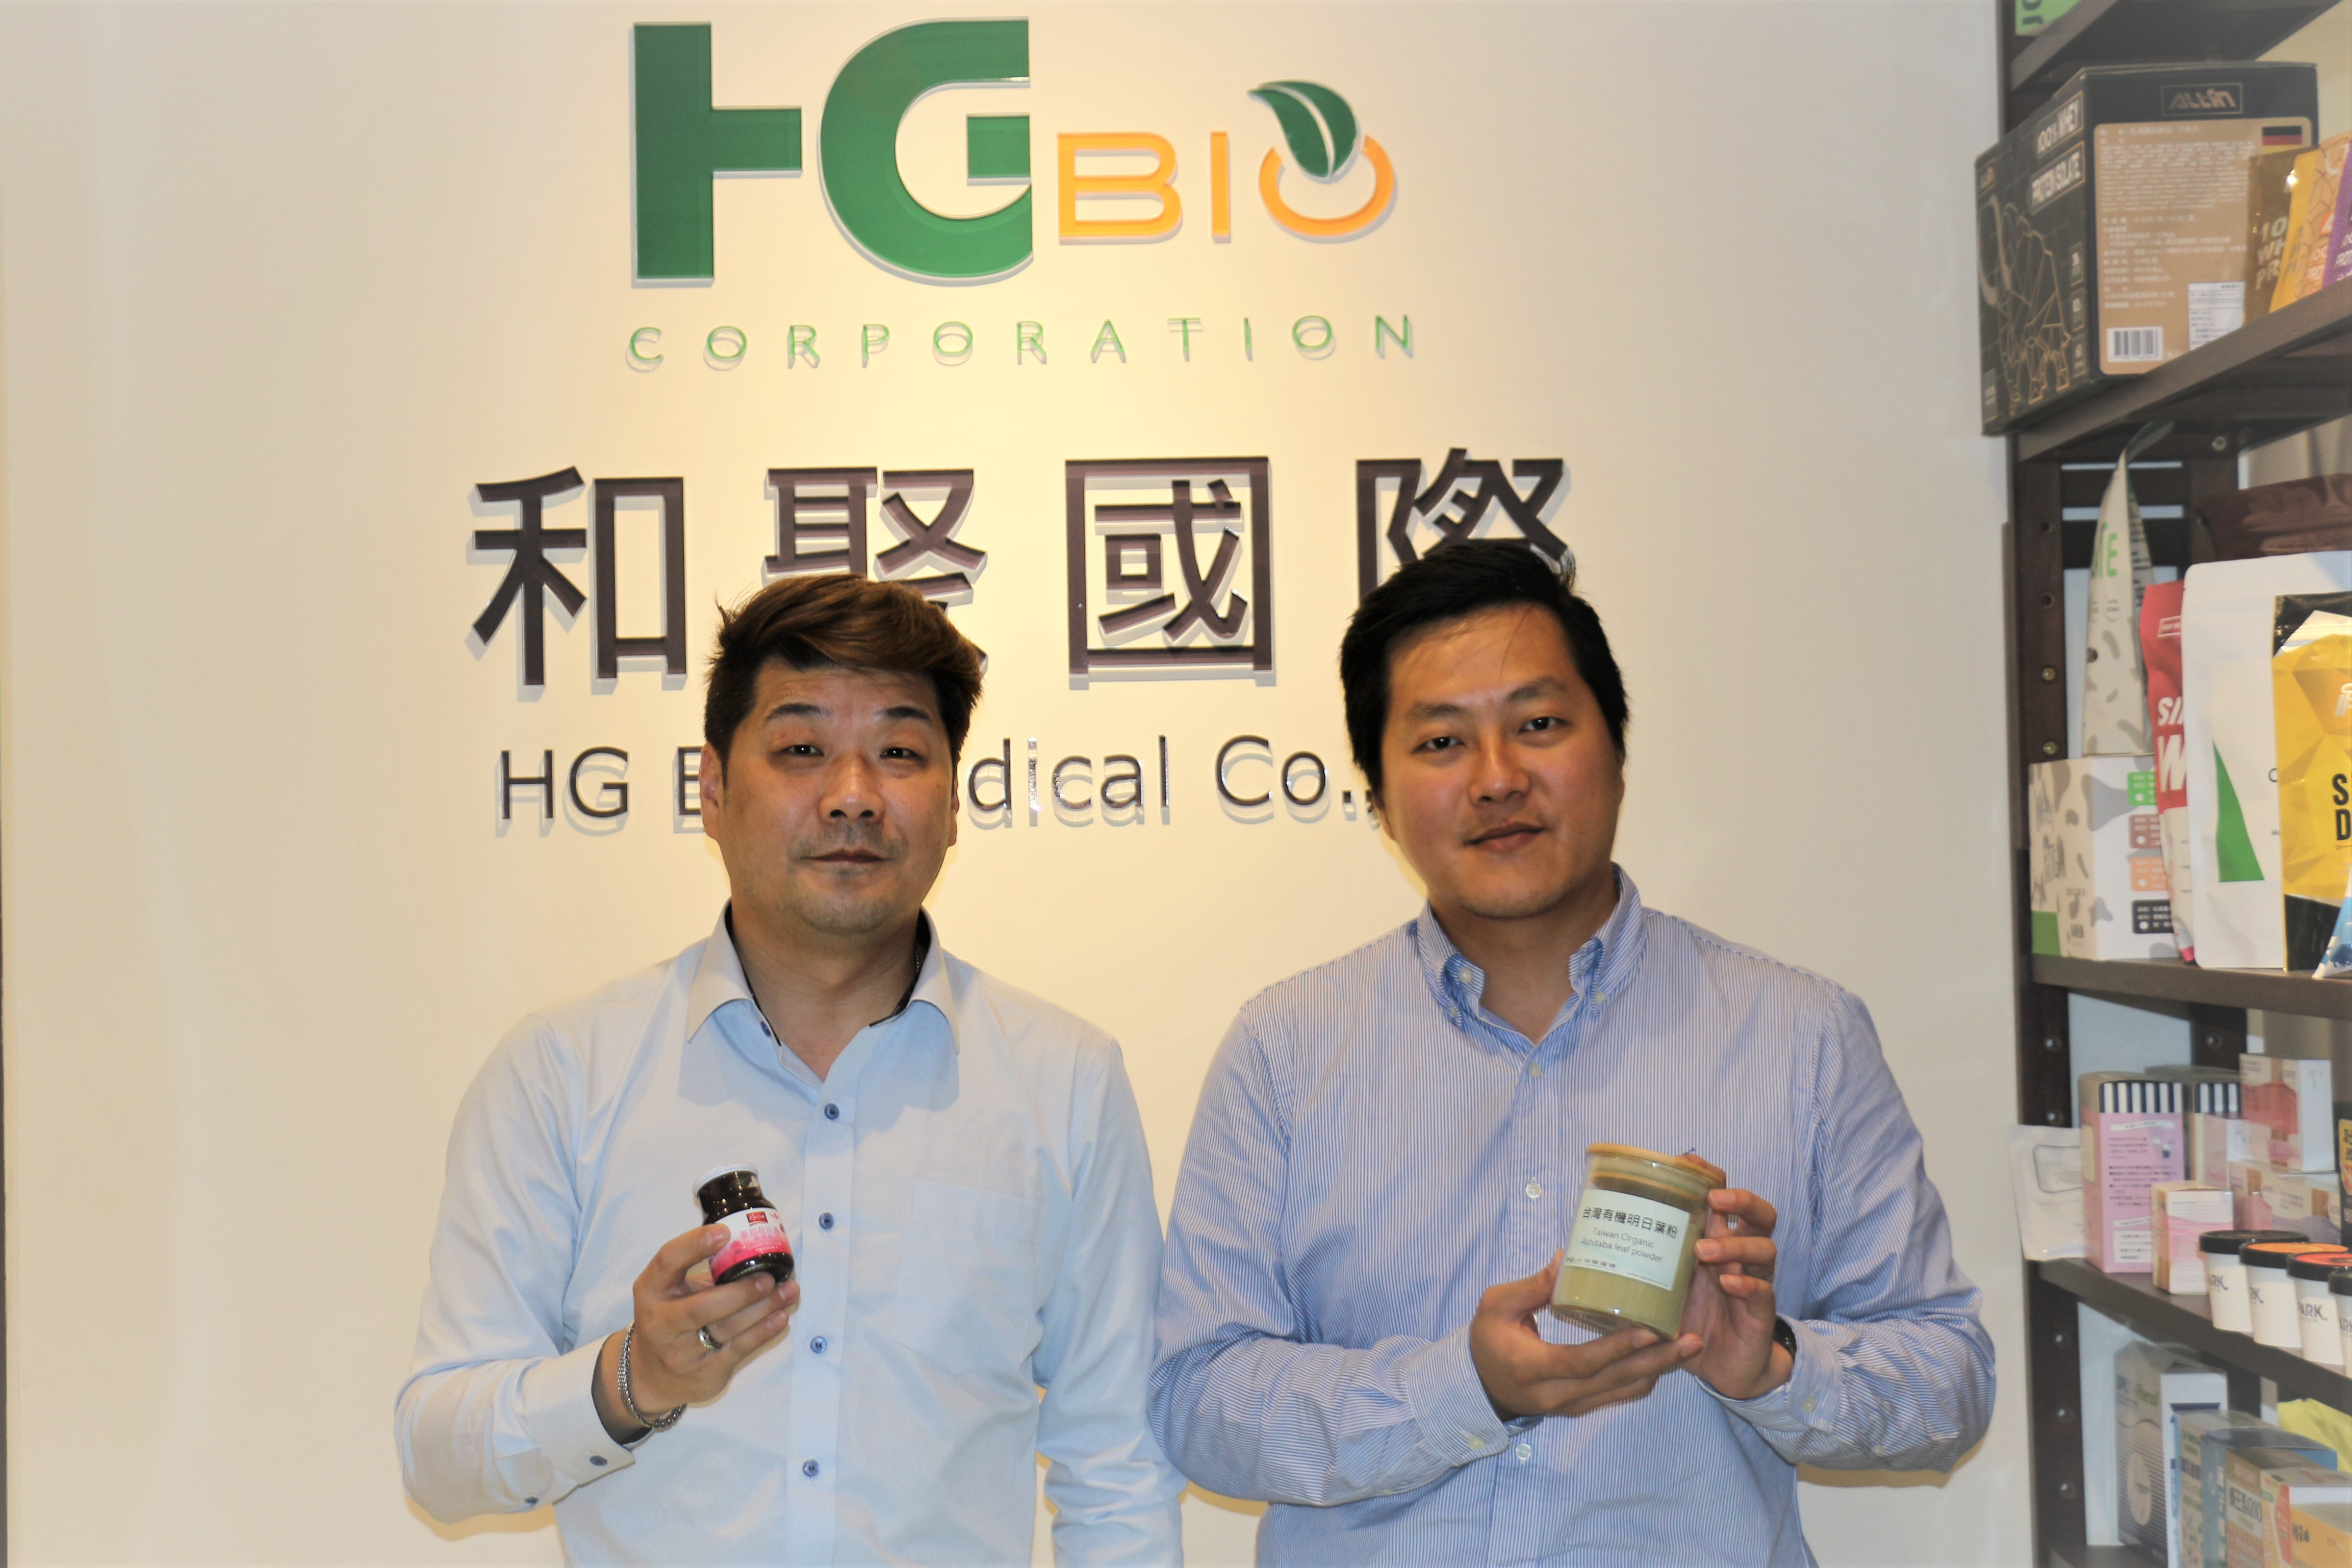 HG Biomedical Corporation Acquires Key Technologies to assist Pharmaceutical Companies in Developing New Products